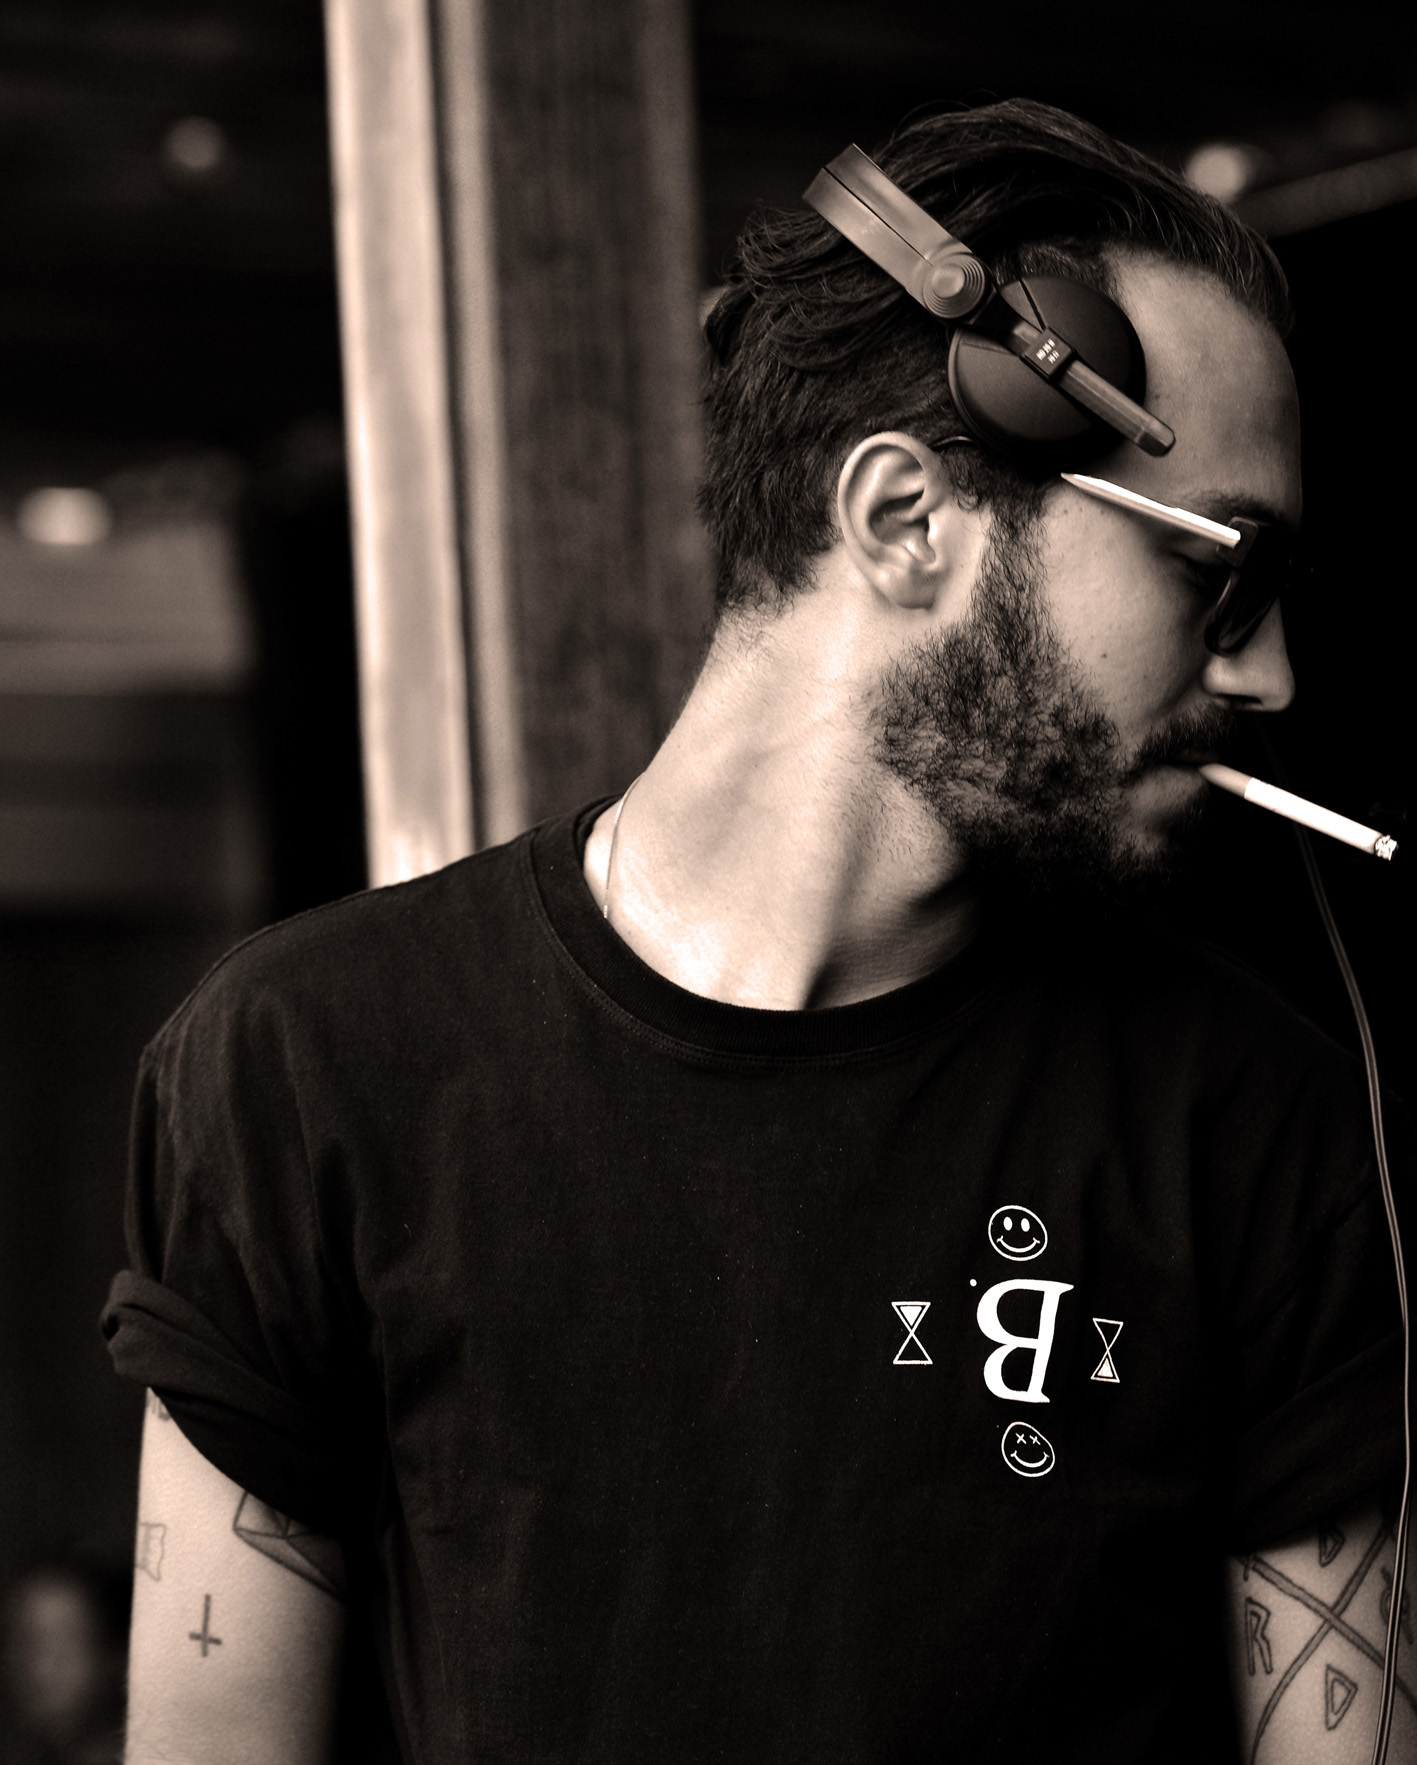 1b1f-make-it-bun-dem-skrillex-ft-damien-marley-remixe-par-brodinski